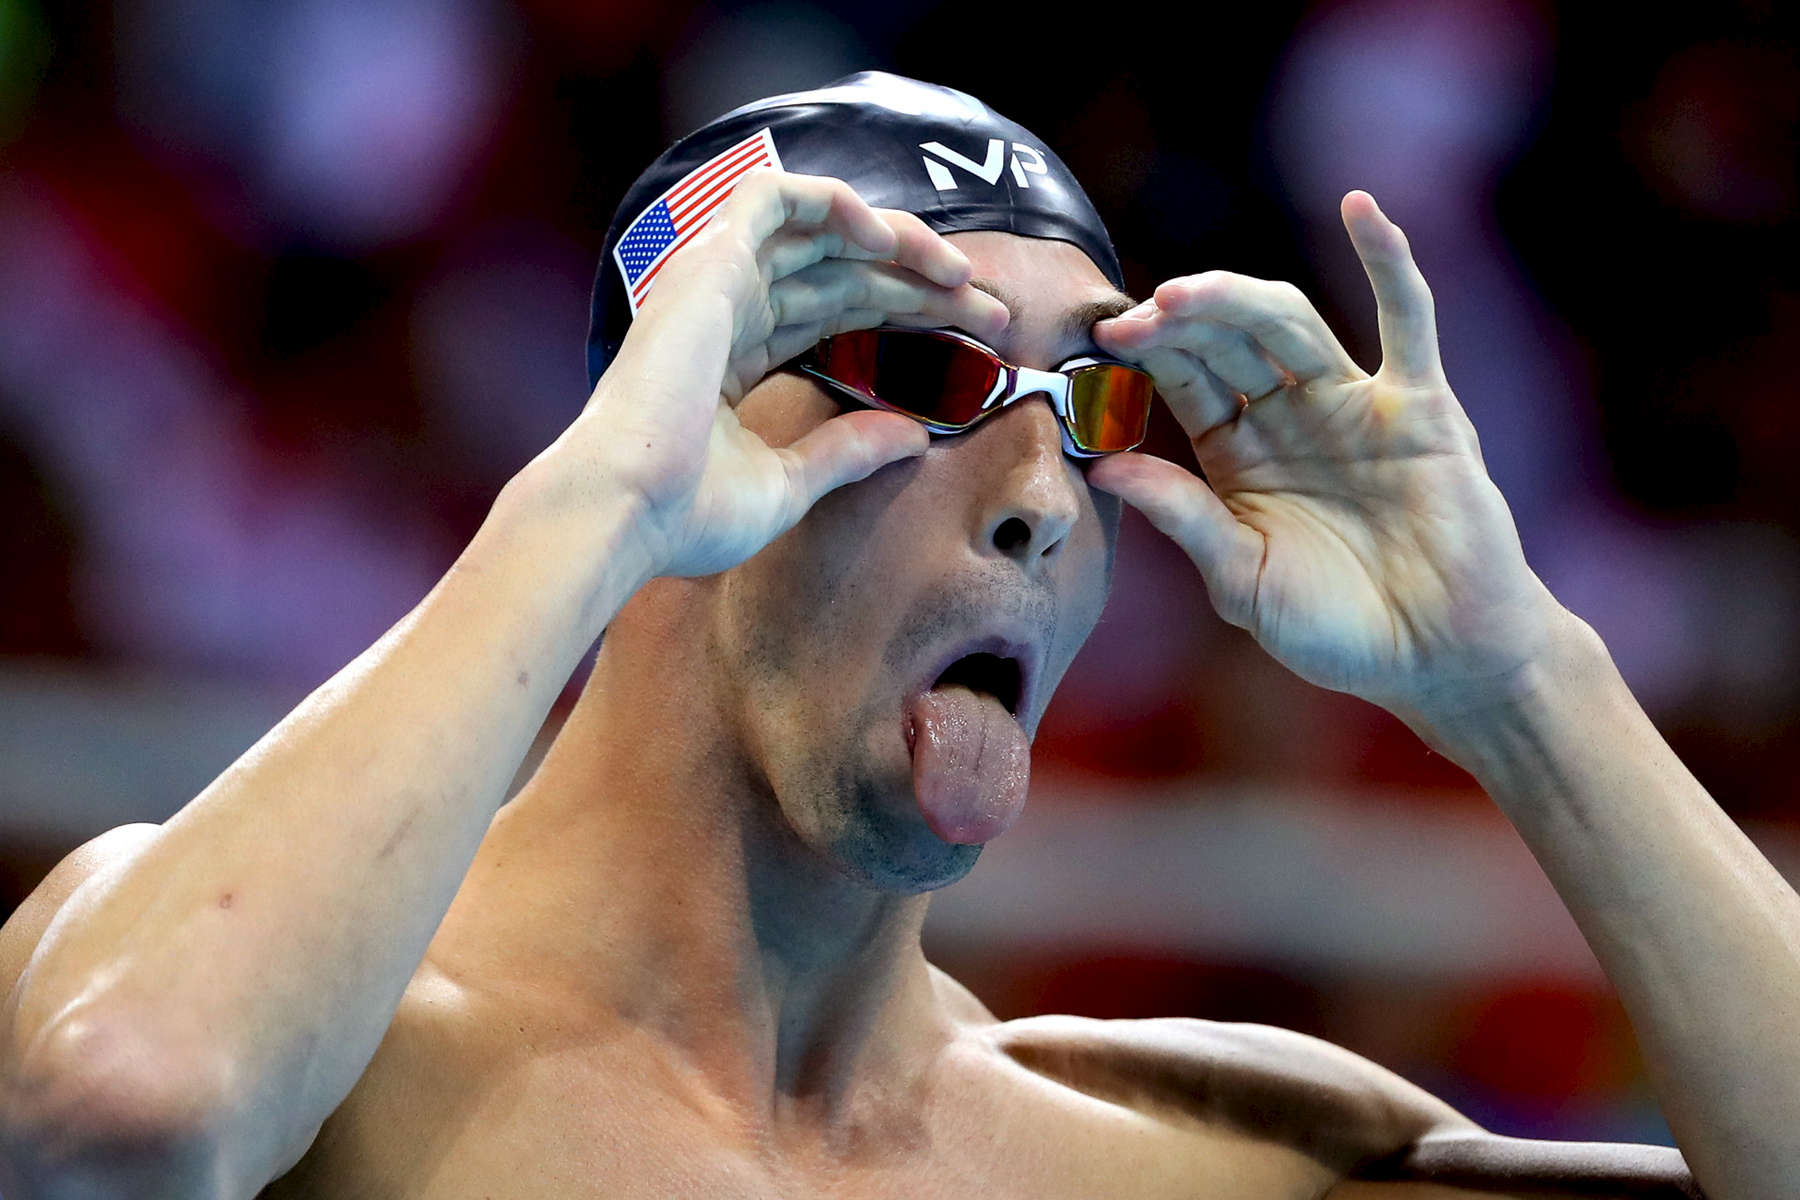 Michael Phelps of the United States prepares in the second Semifinal of the Men's 200m Butterfly on Day 3 of the Rio 2016 Olympic Games at the Olympic Aquatics Stadium on August 8, 2016 in Rio de Janeiro, Brazil.